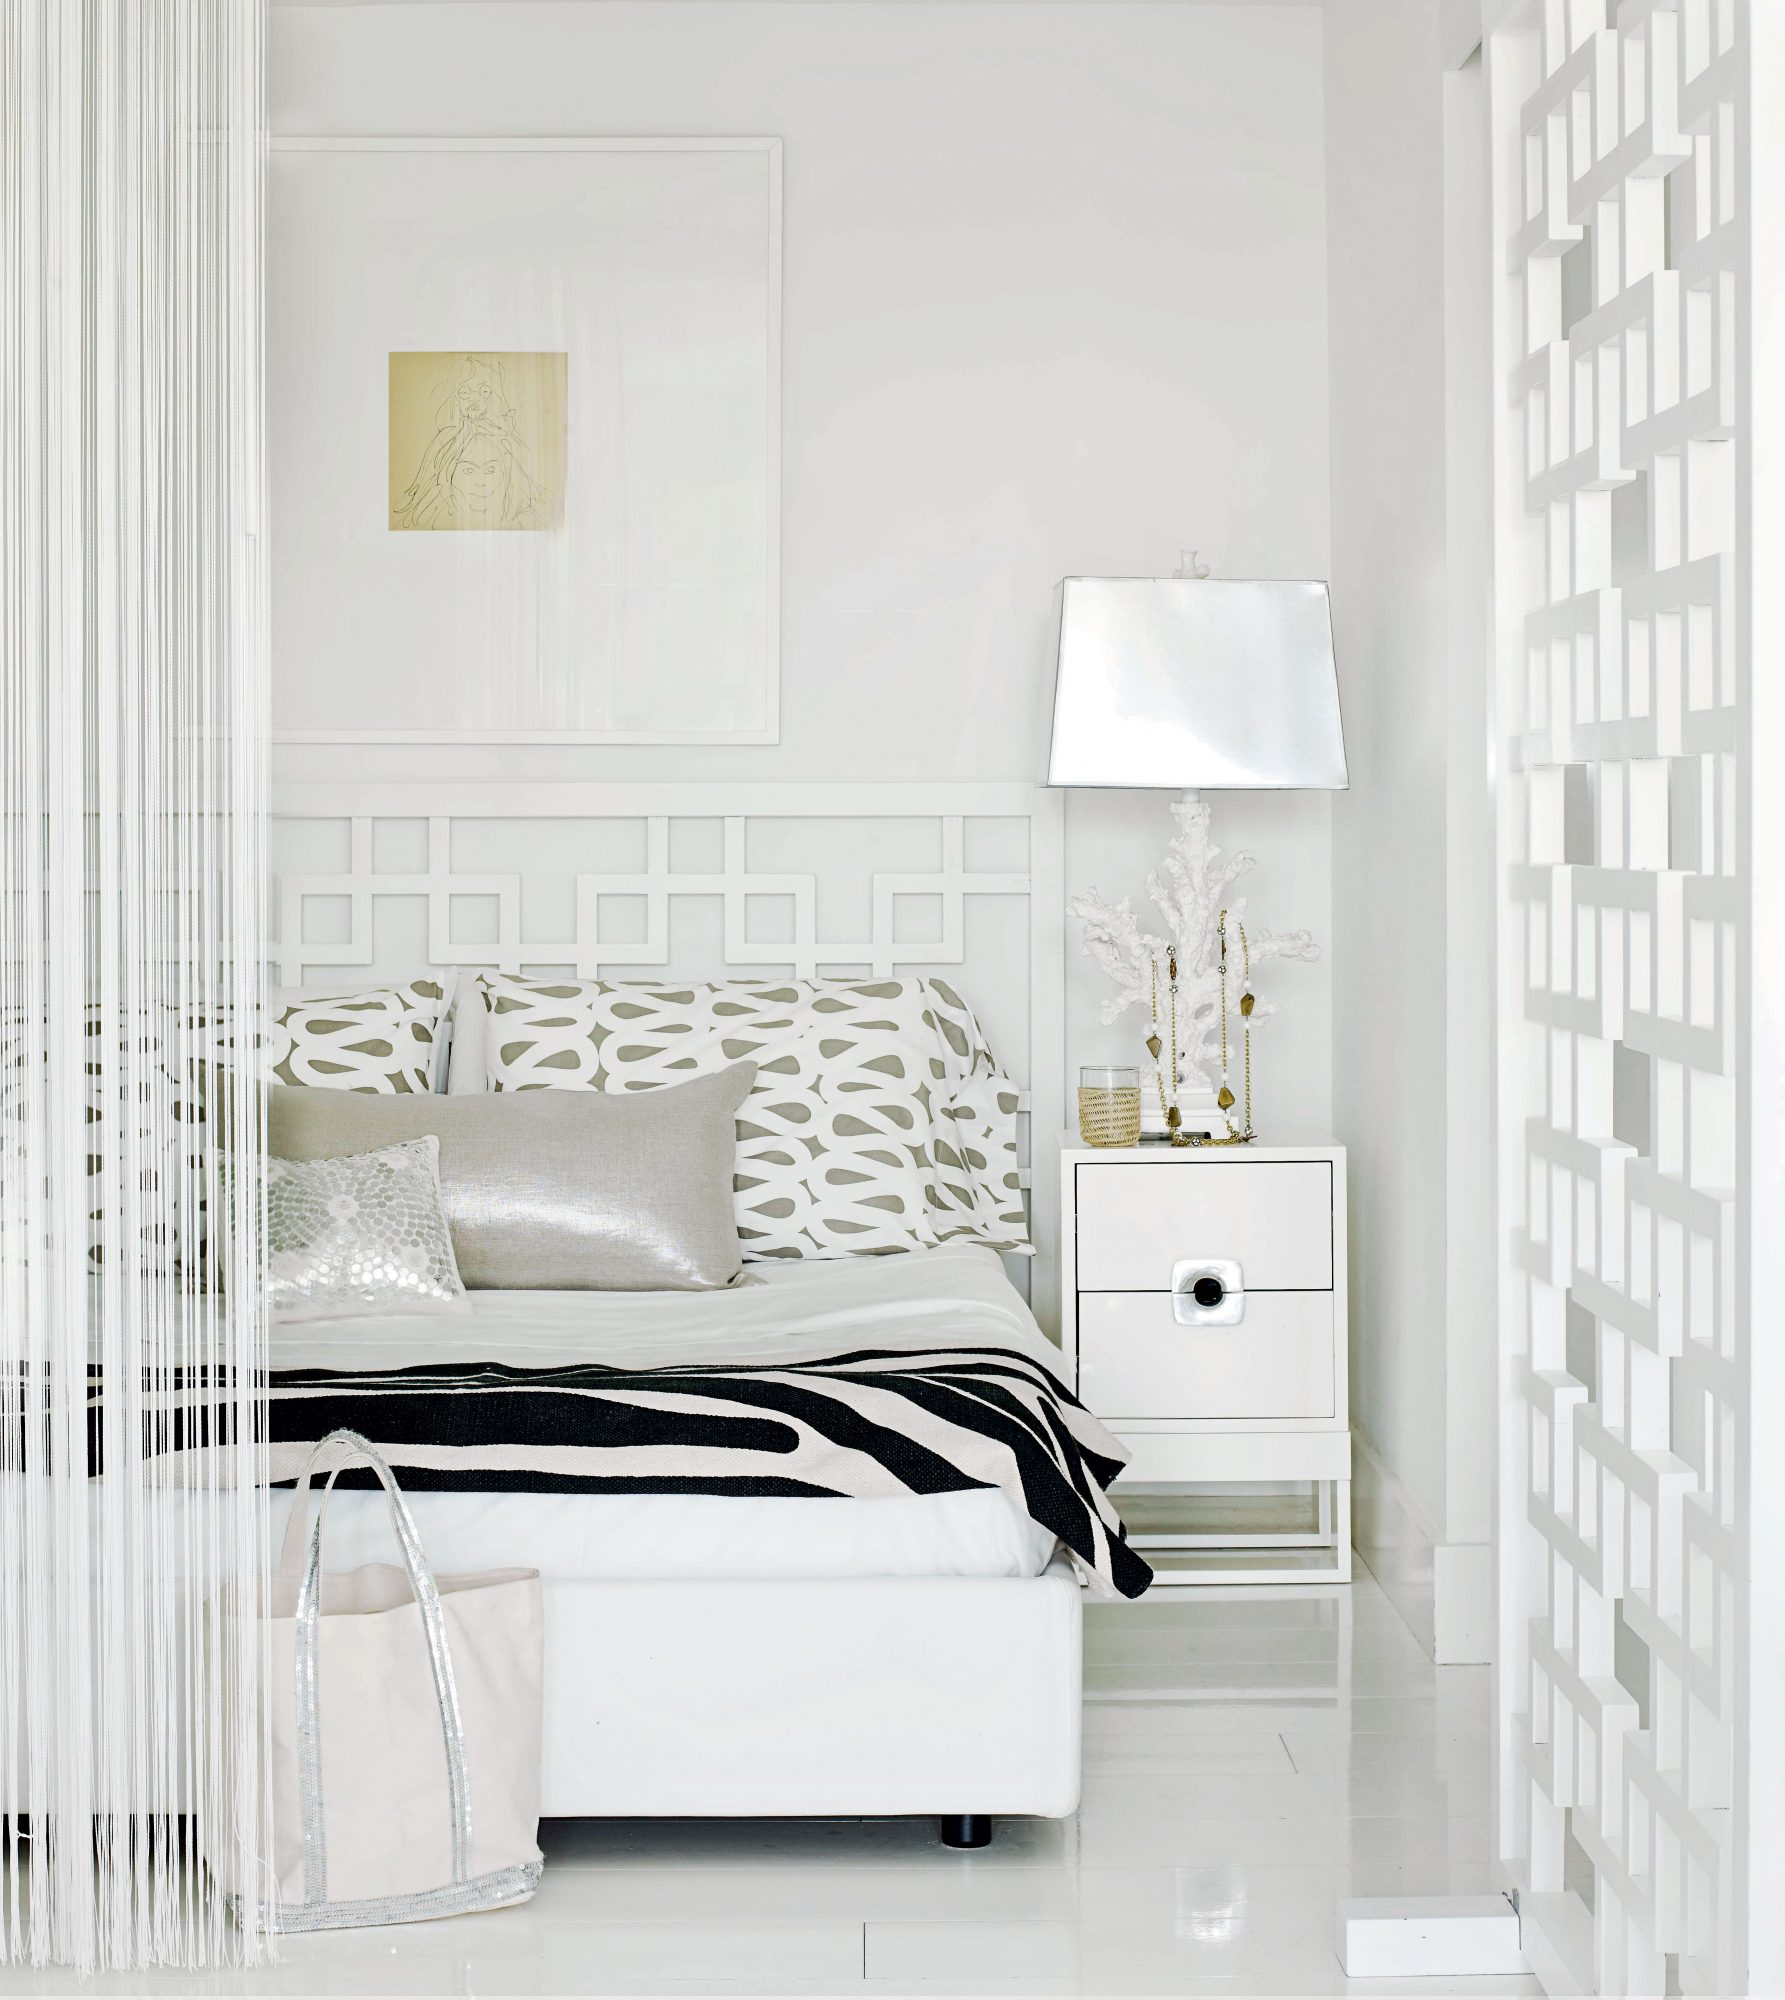 Vibrant silver-sequined pillows and a fun, zebra-print blanket nod to the glamorous Miami lifestyle just outside.